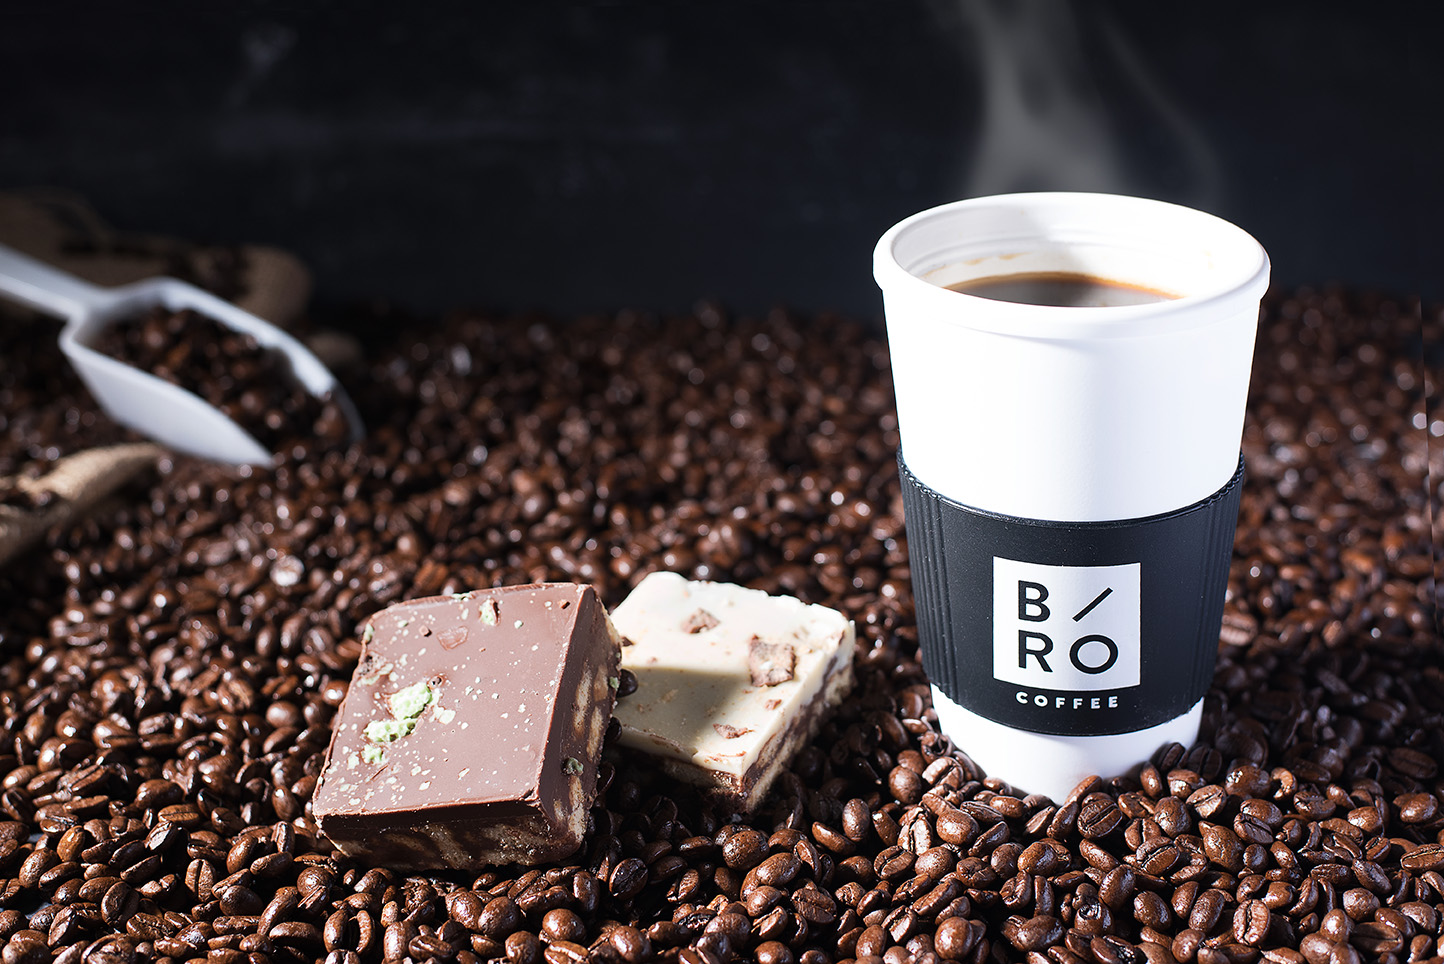 Branding photography for Bro Coffee